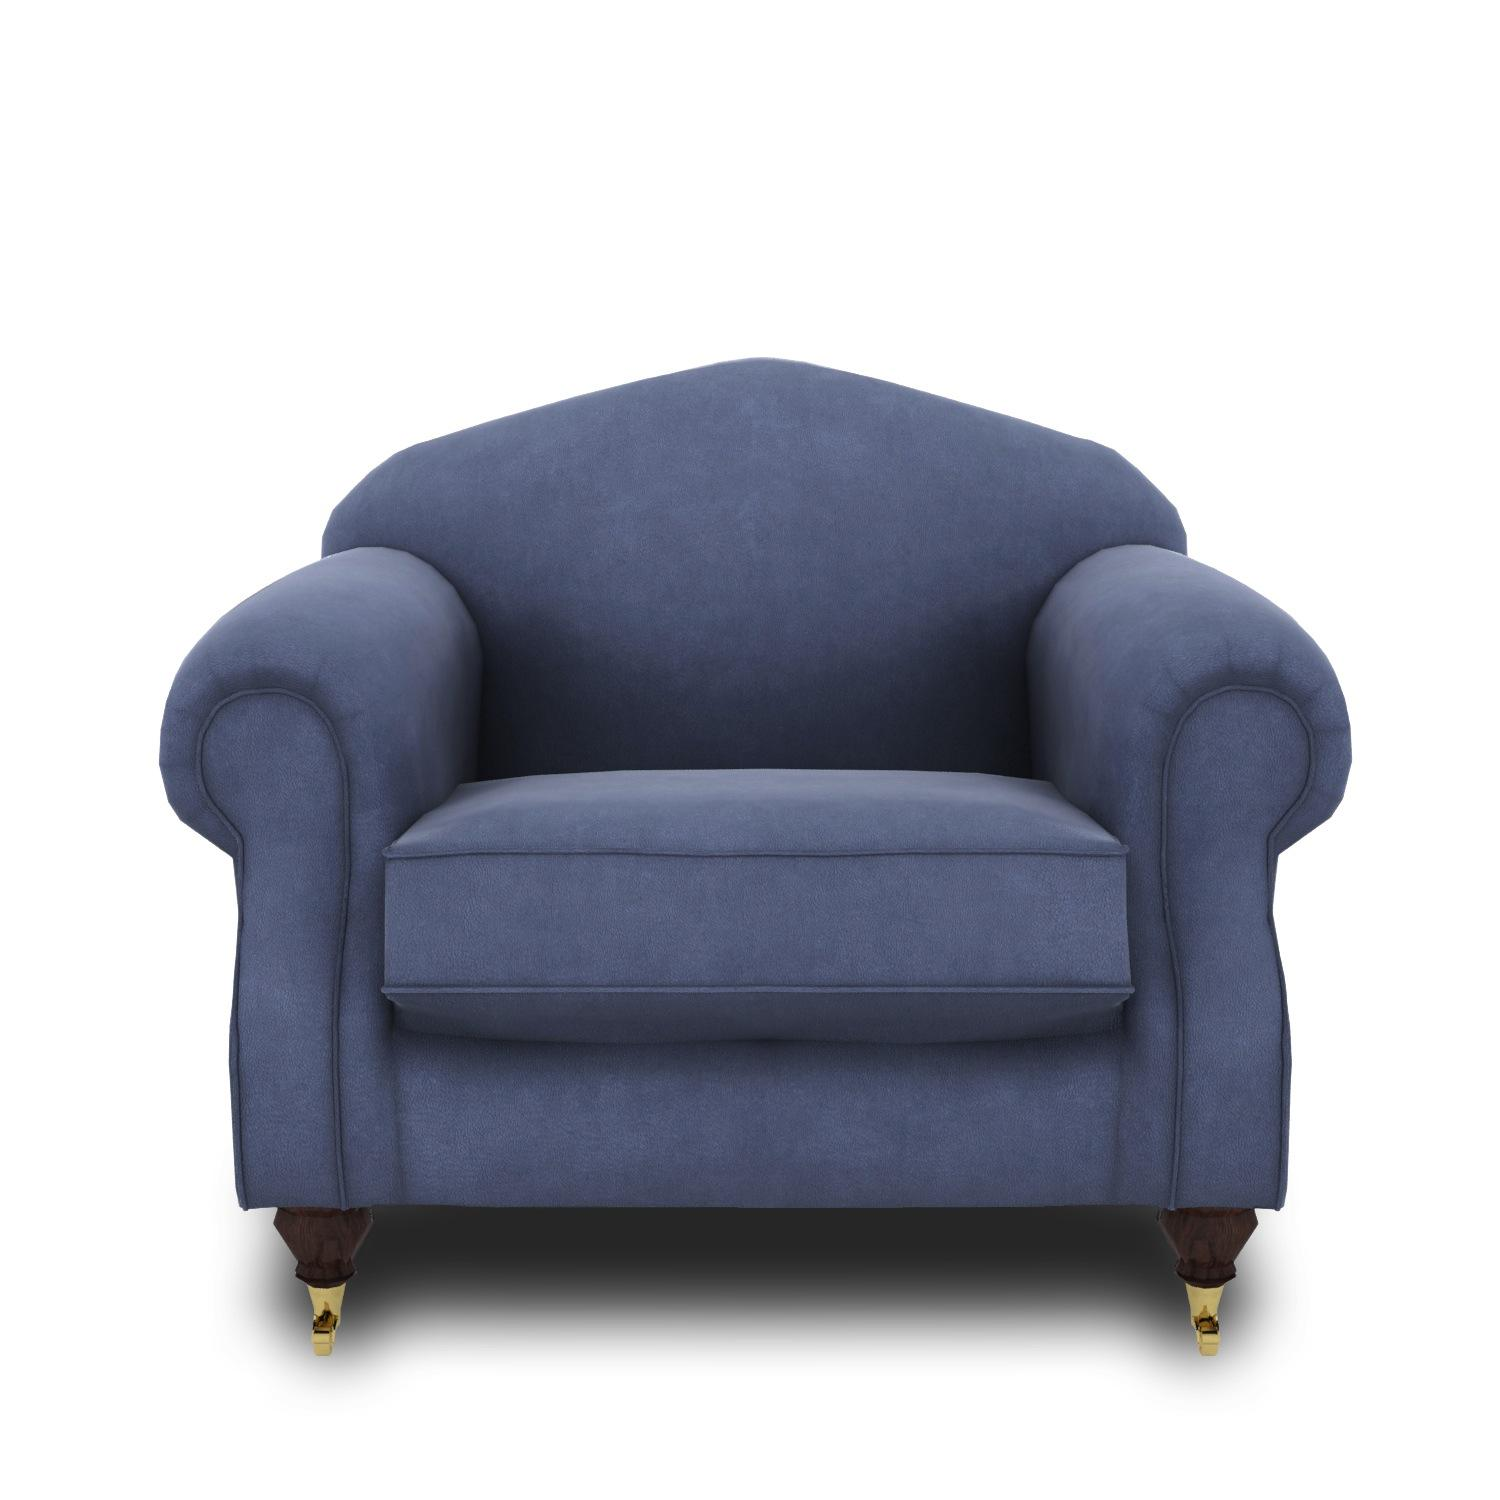 A blue chair with a white background  Description automatically generated with medium confidence